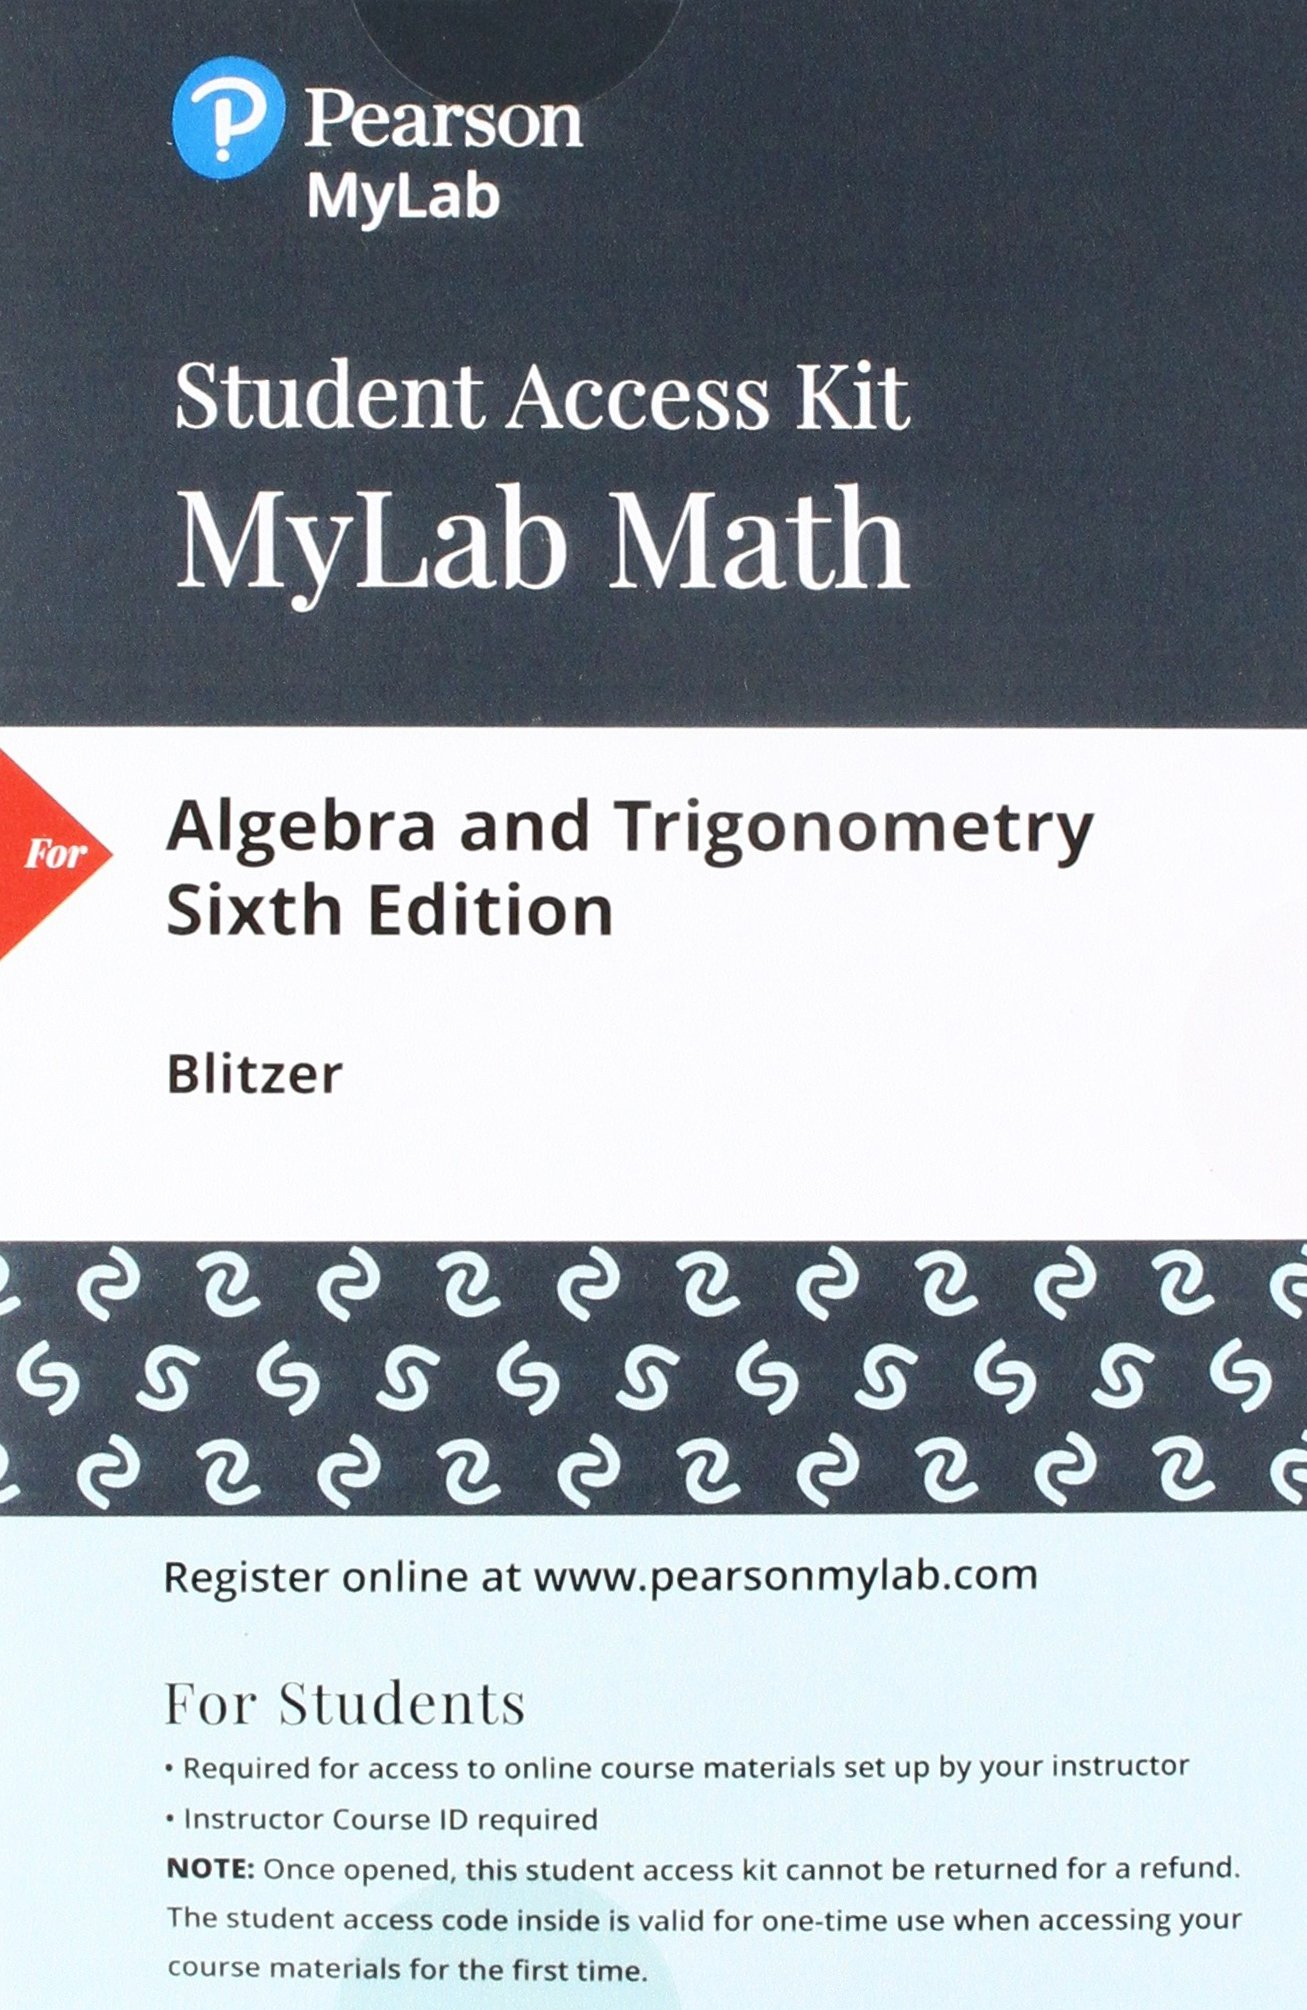 Algebra and Trigonometry, Books A La Carte Edition Plus MyLab Math with  eText -- Access Card Package (6th Edition) - Livros na Amazon Brasil-  9780134765495